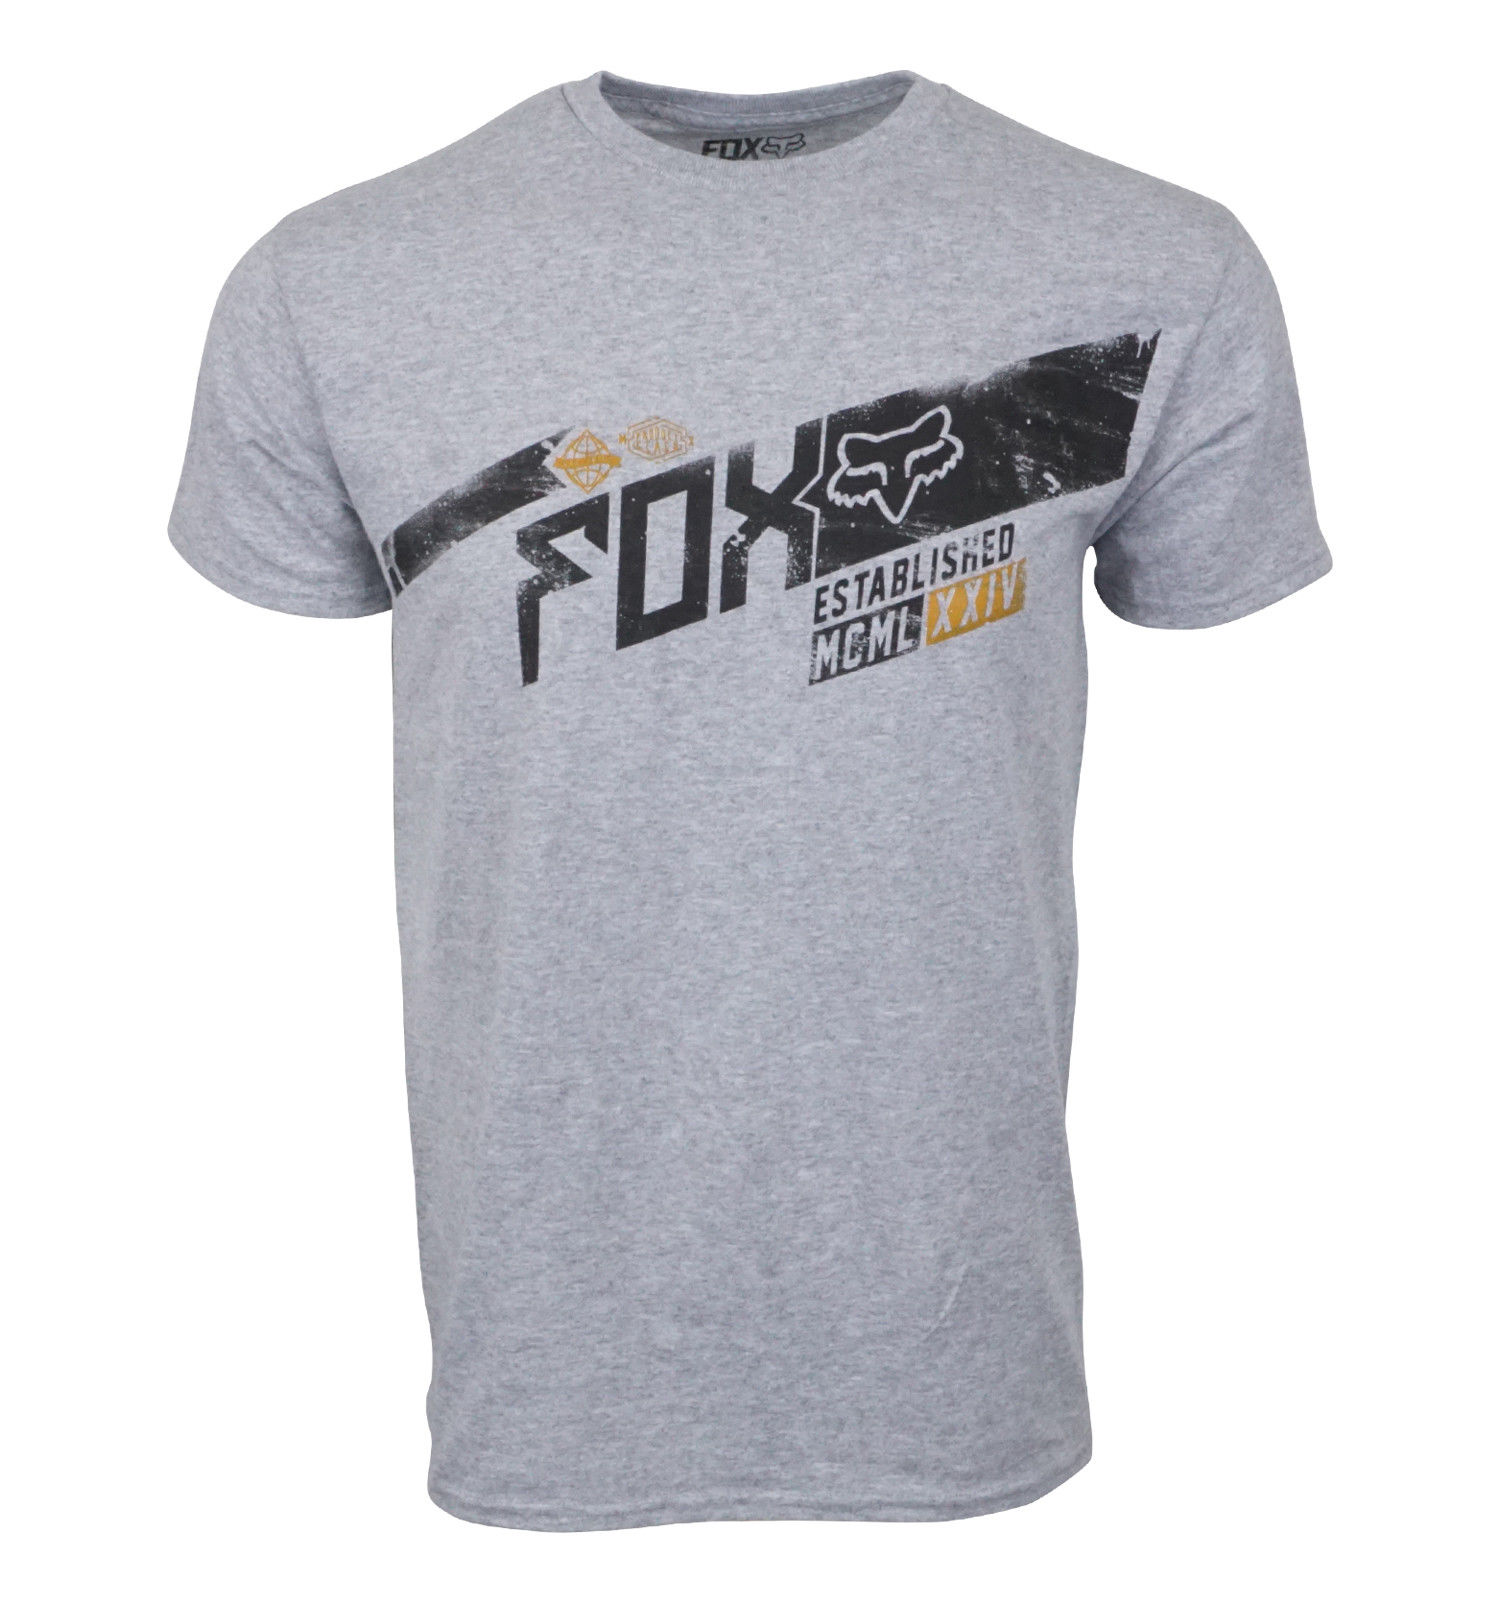 FOX RACING MENS GREY HEATHER   T     SHIRT   Summer Men'S fashion Tee,Comfortable   t     shirt  ,Casual Short Sleeve TEE